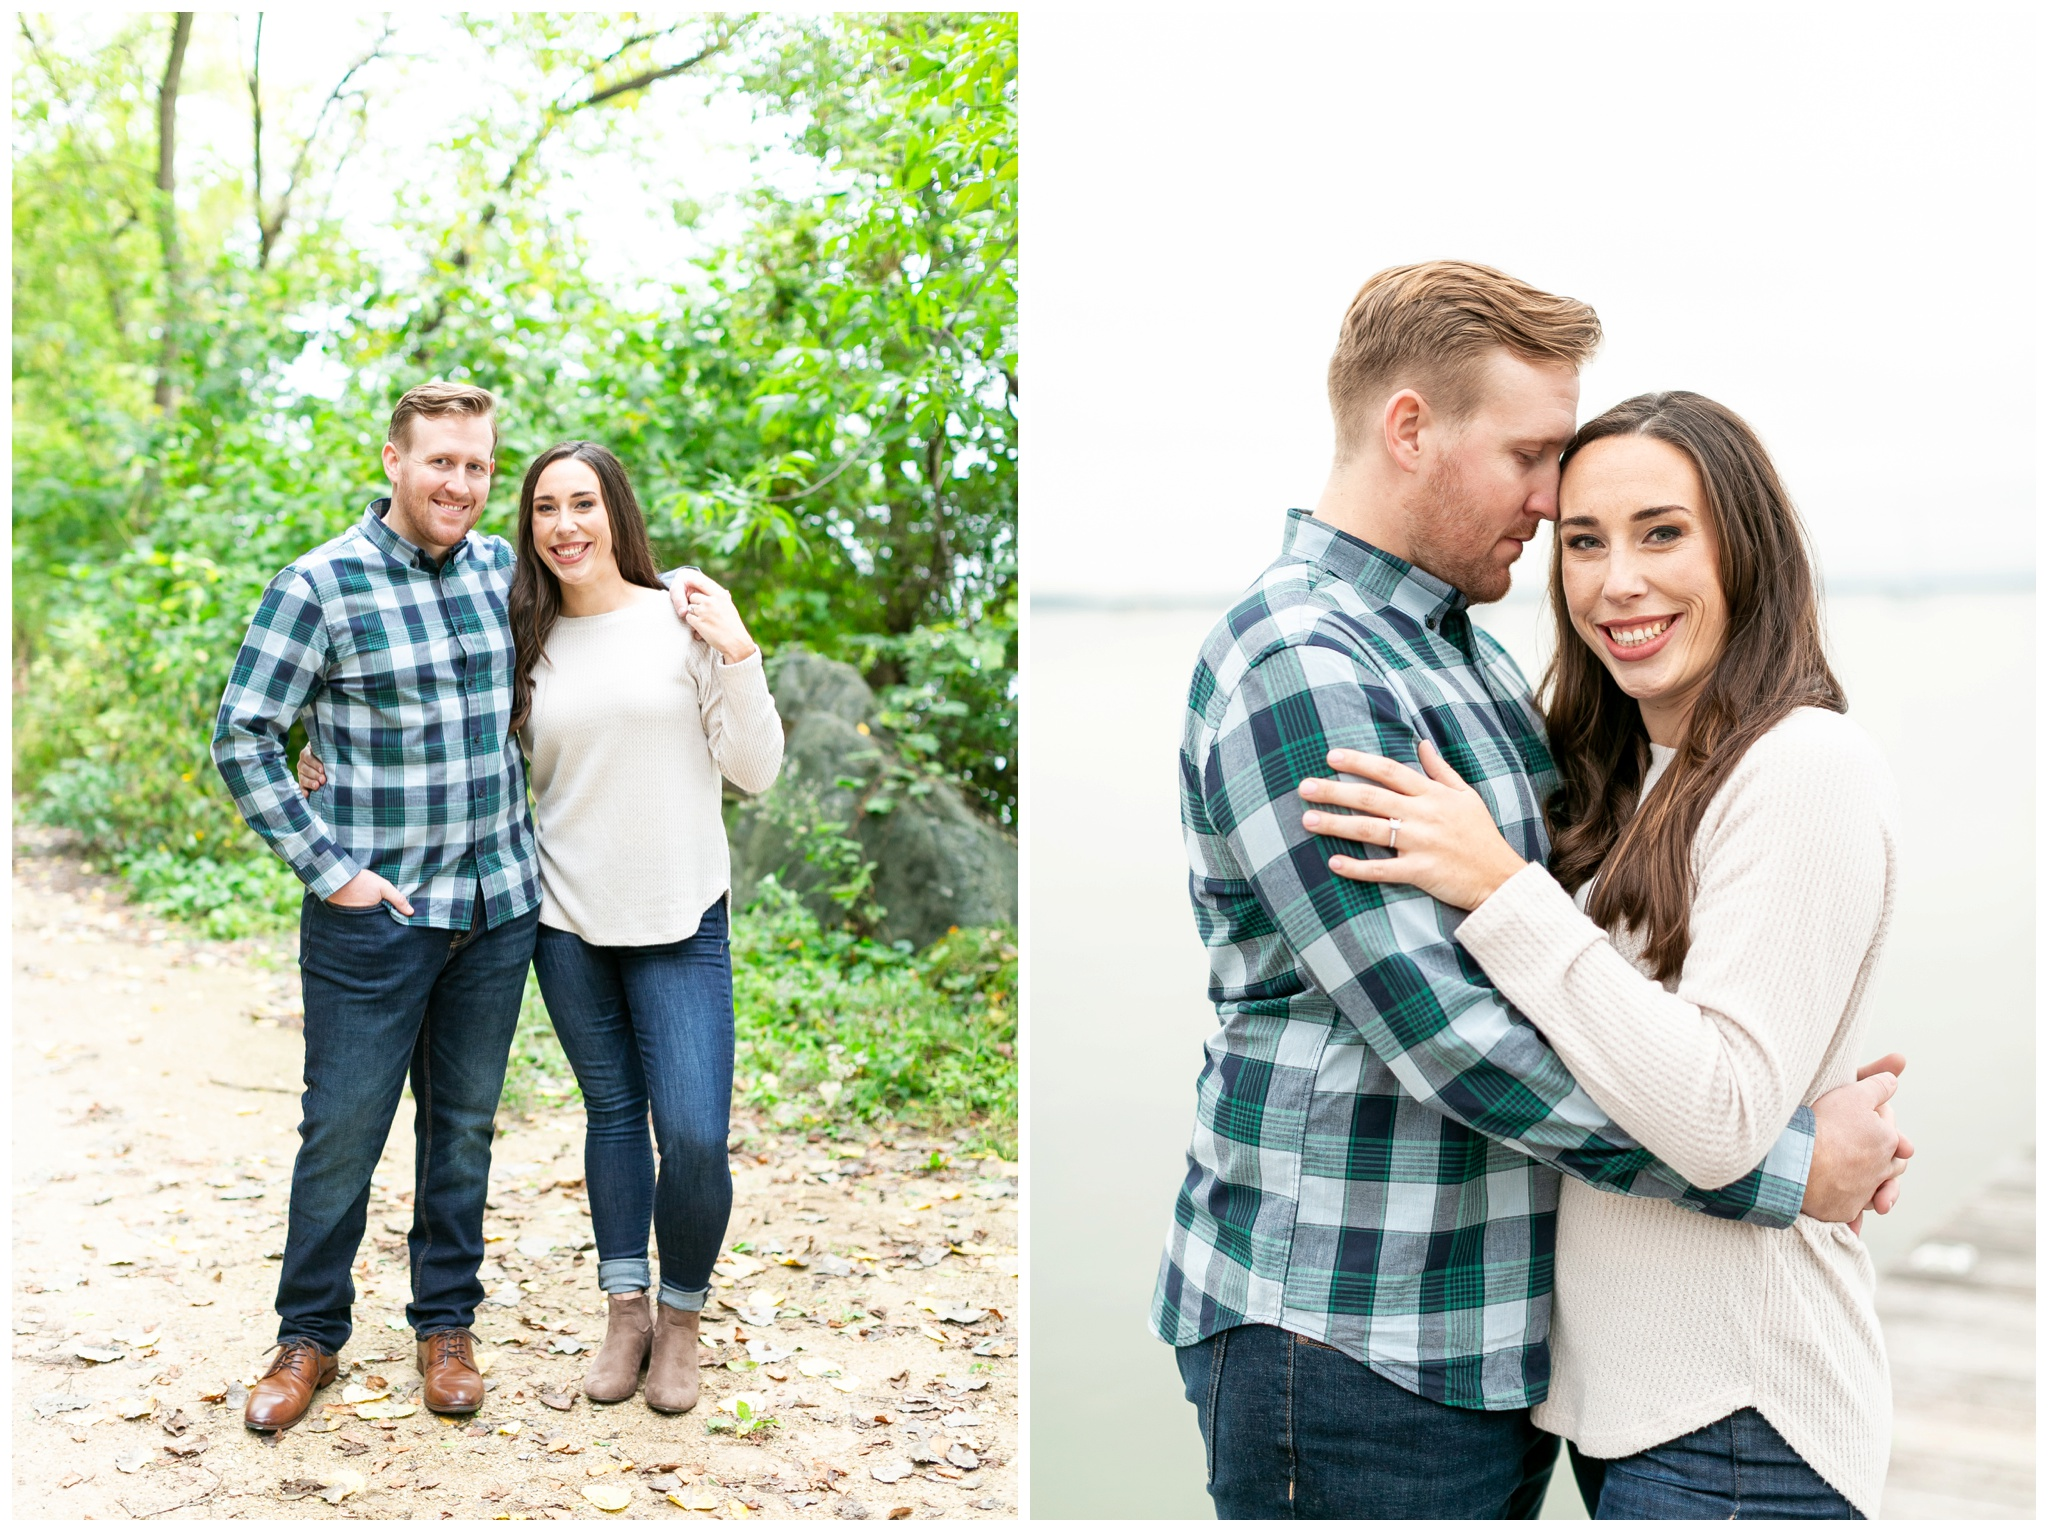 memorial_union_engagement_session_madison_wisconsin_1647.jpg